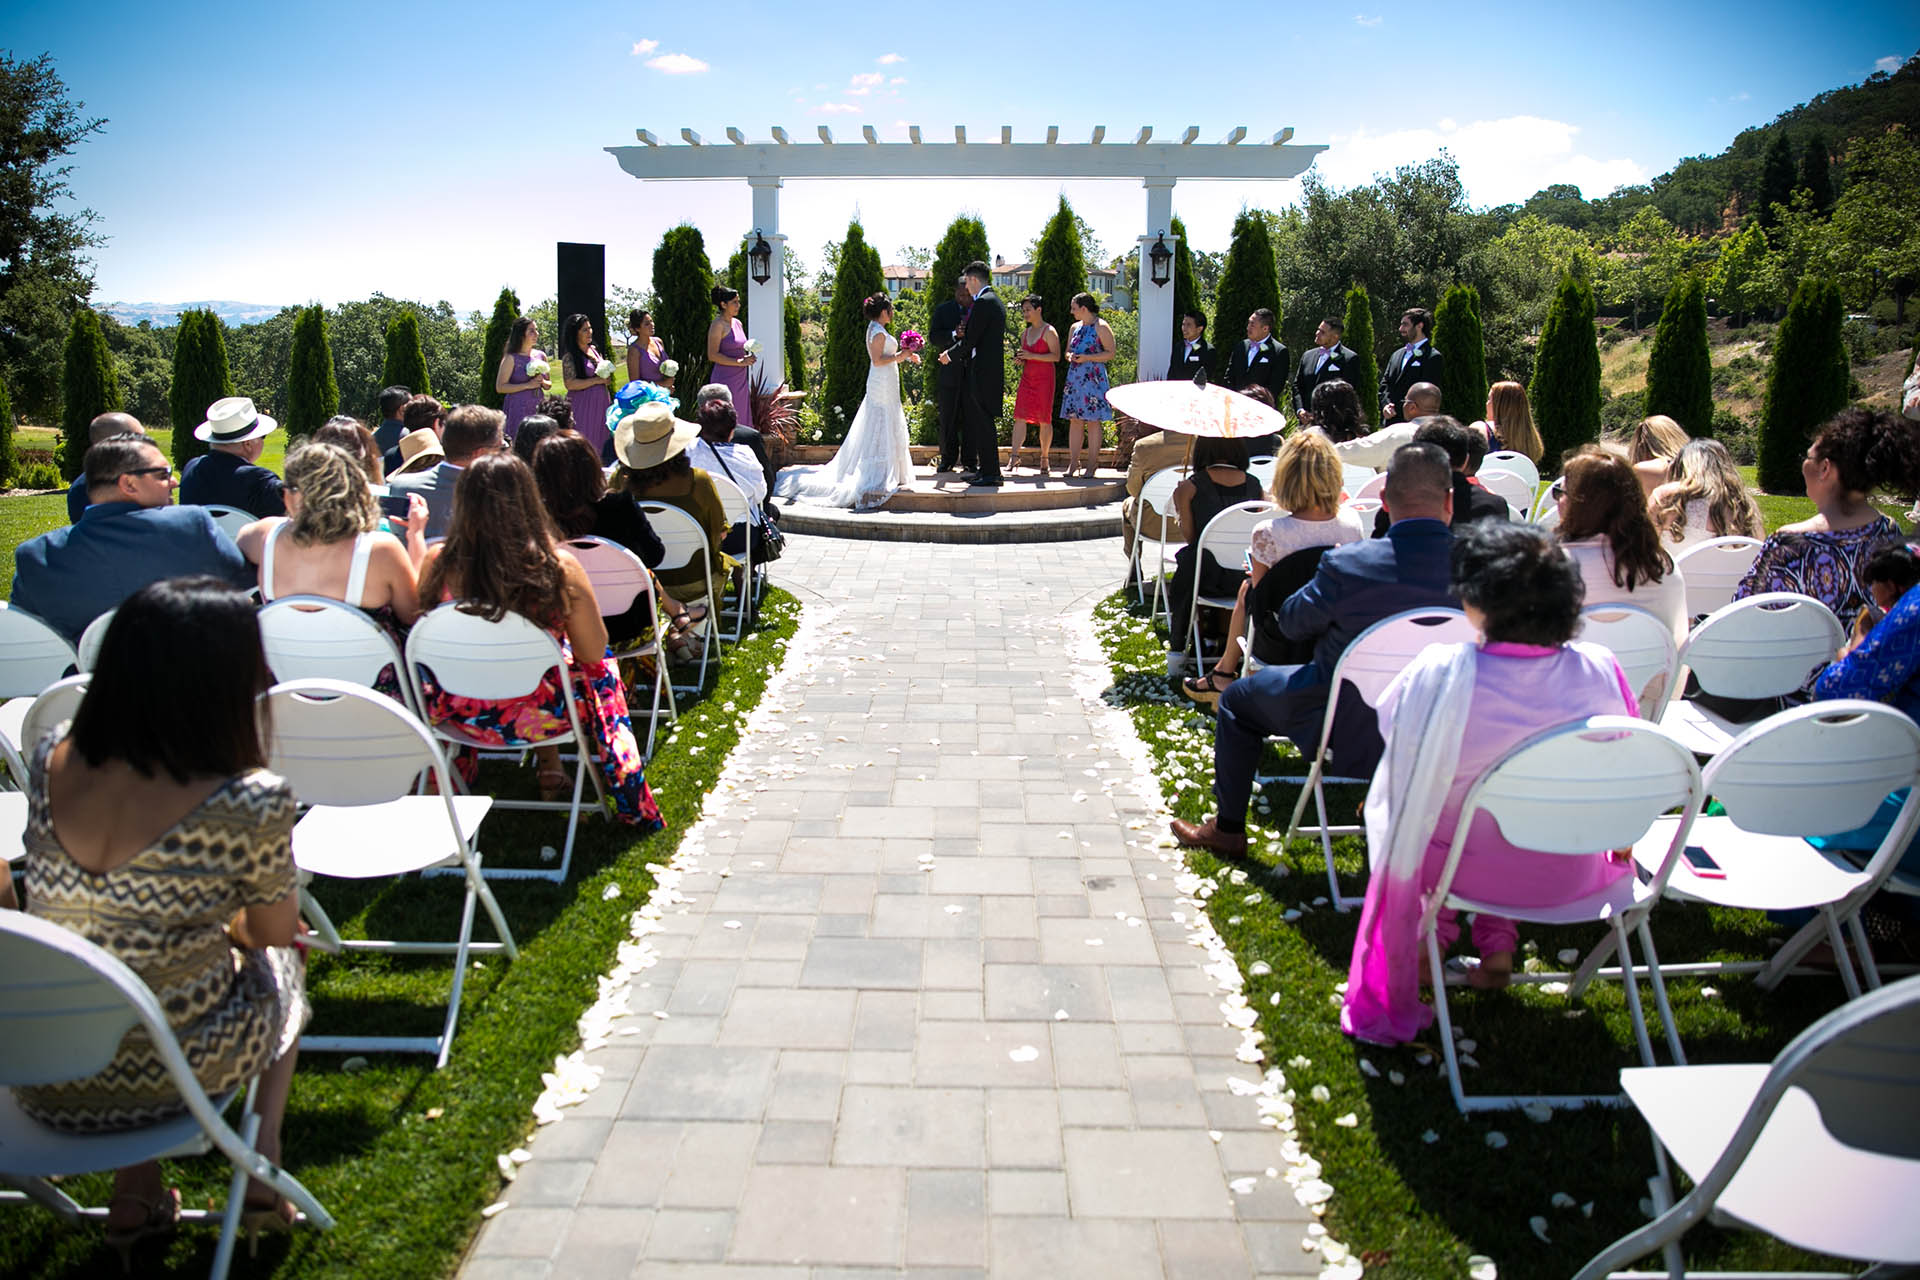 A beautiful backdrop for your wedding ceremony